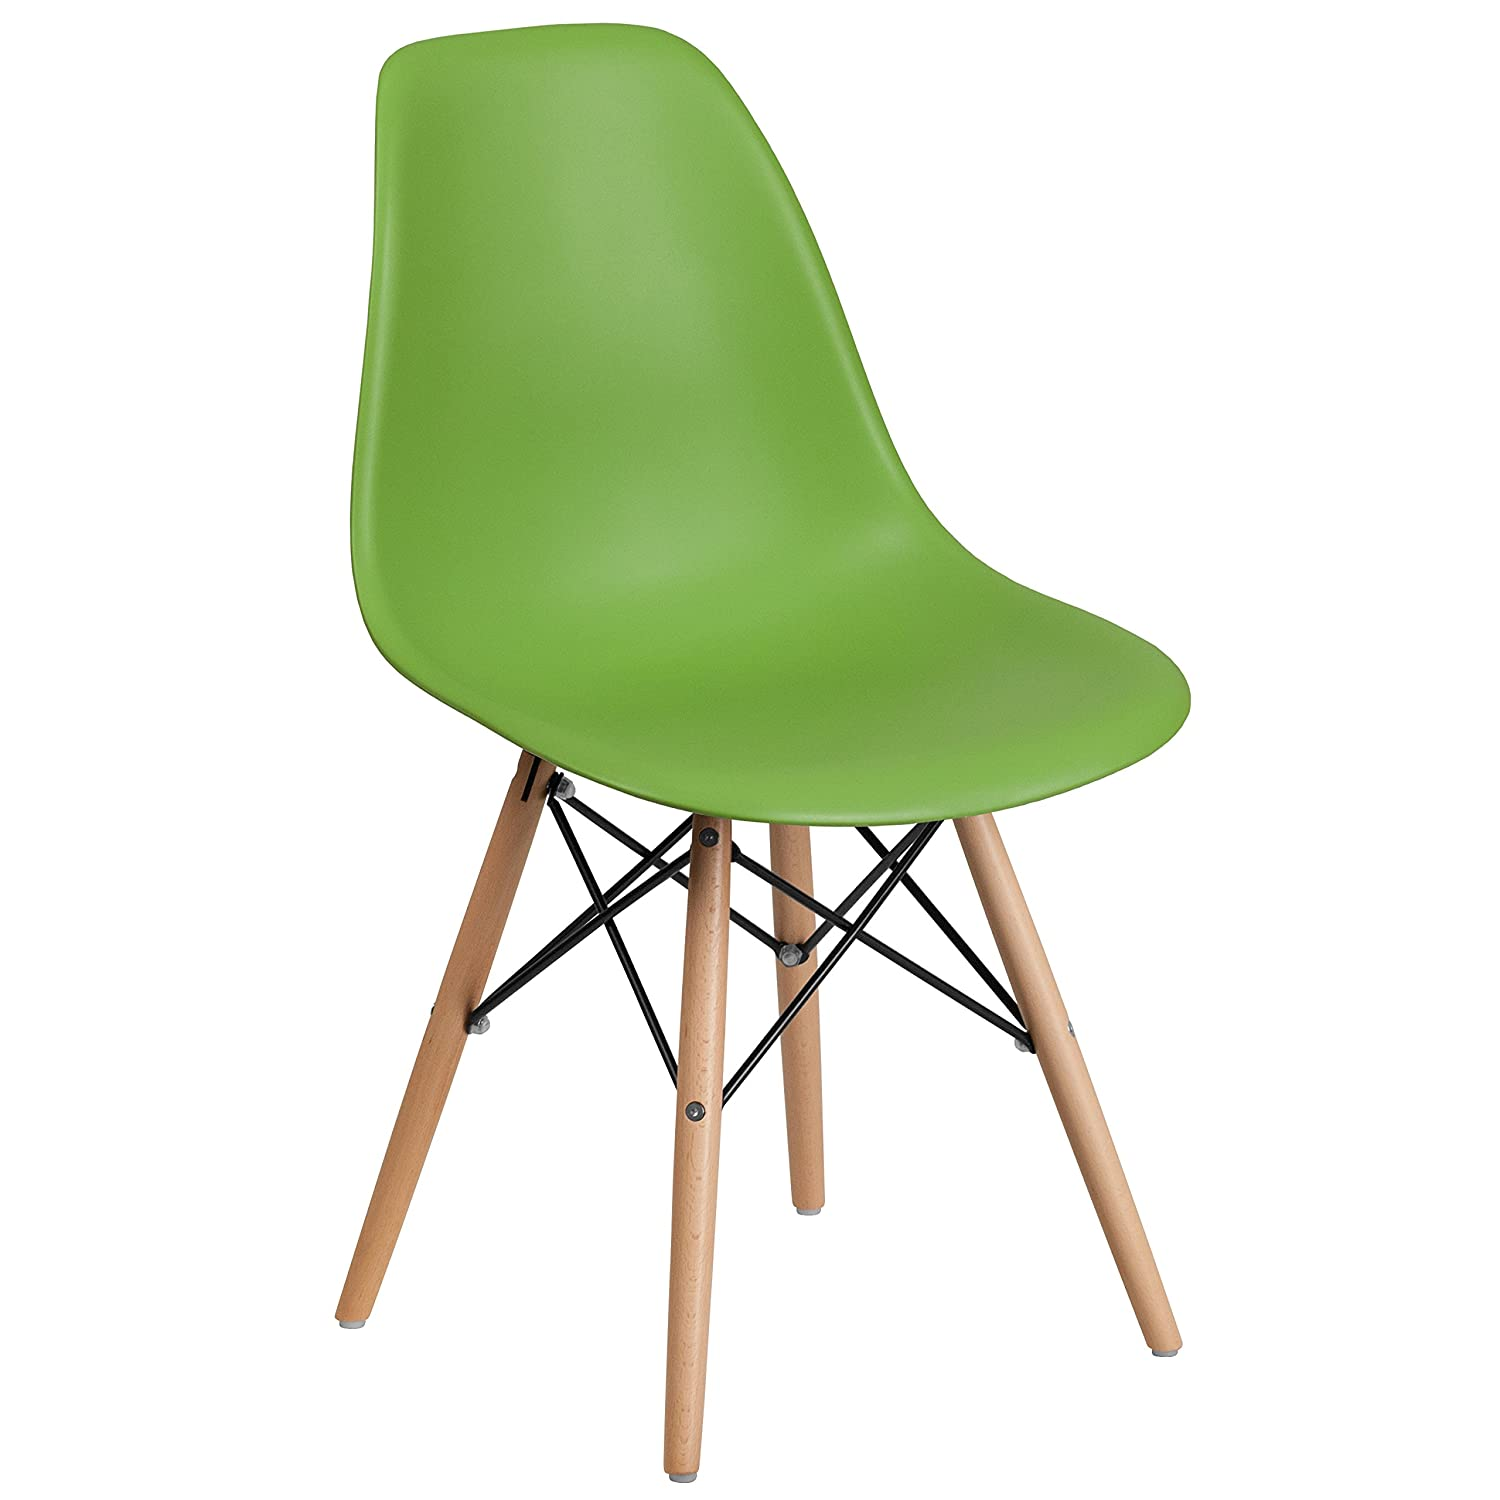 Flash Furniture Elon Series Green Plastic Chair with Wooden Legs